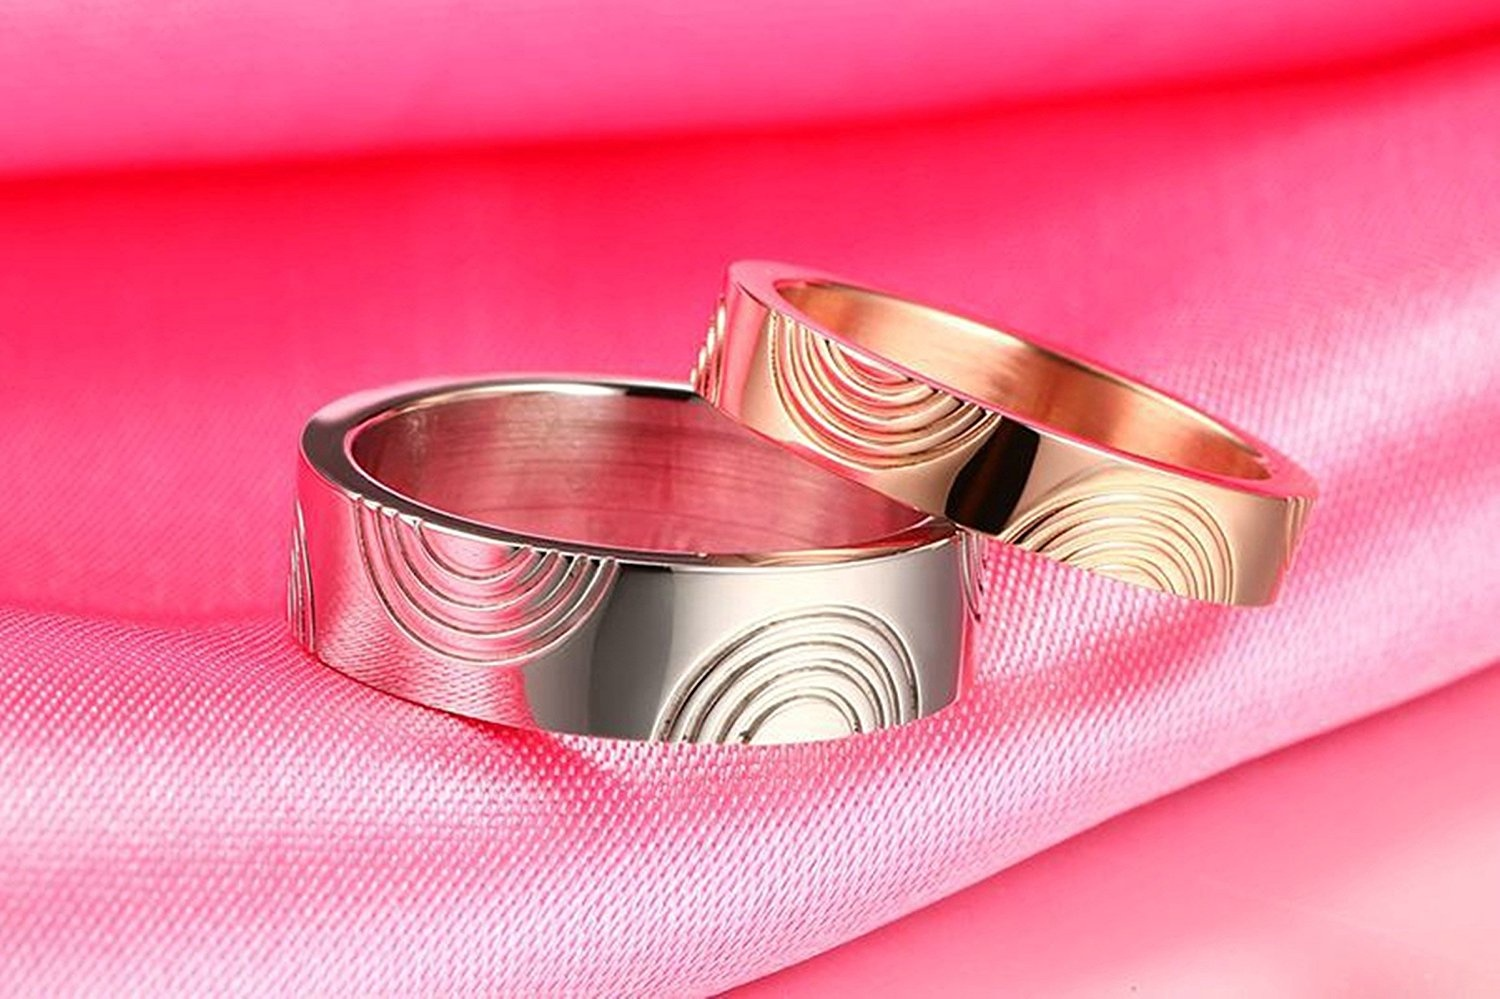 Couples Promise Rings Jewellery: Buy Online from Fishpond.co.nz